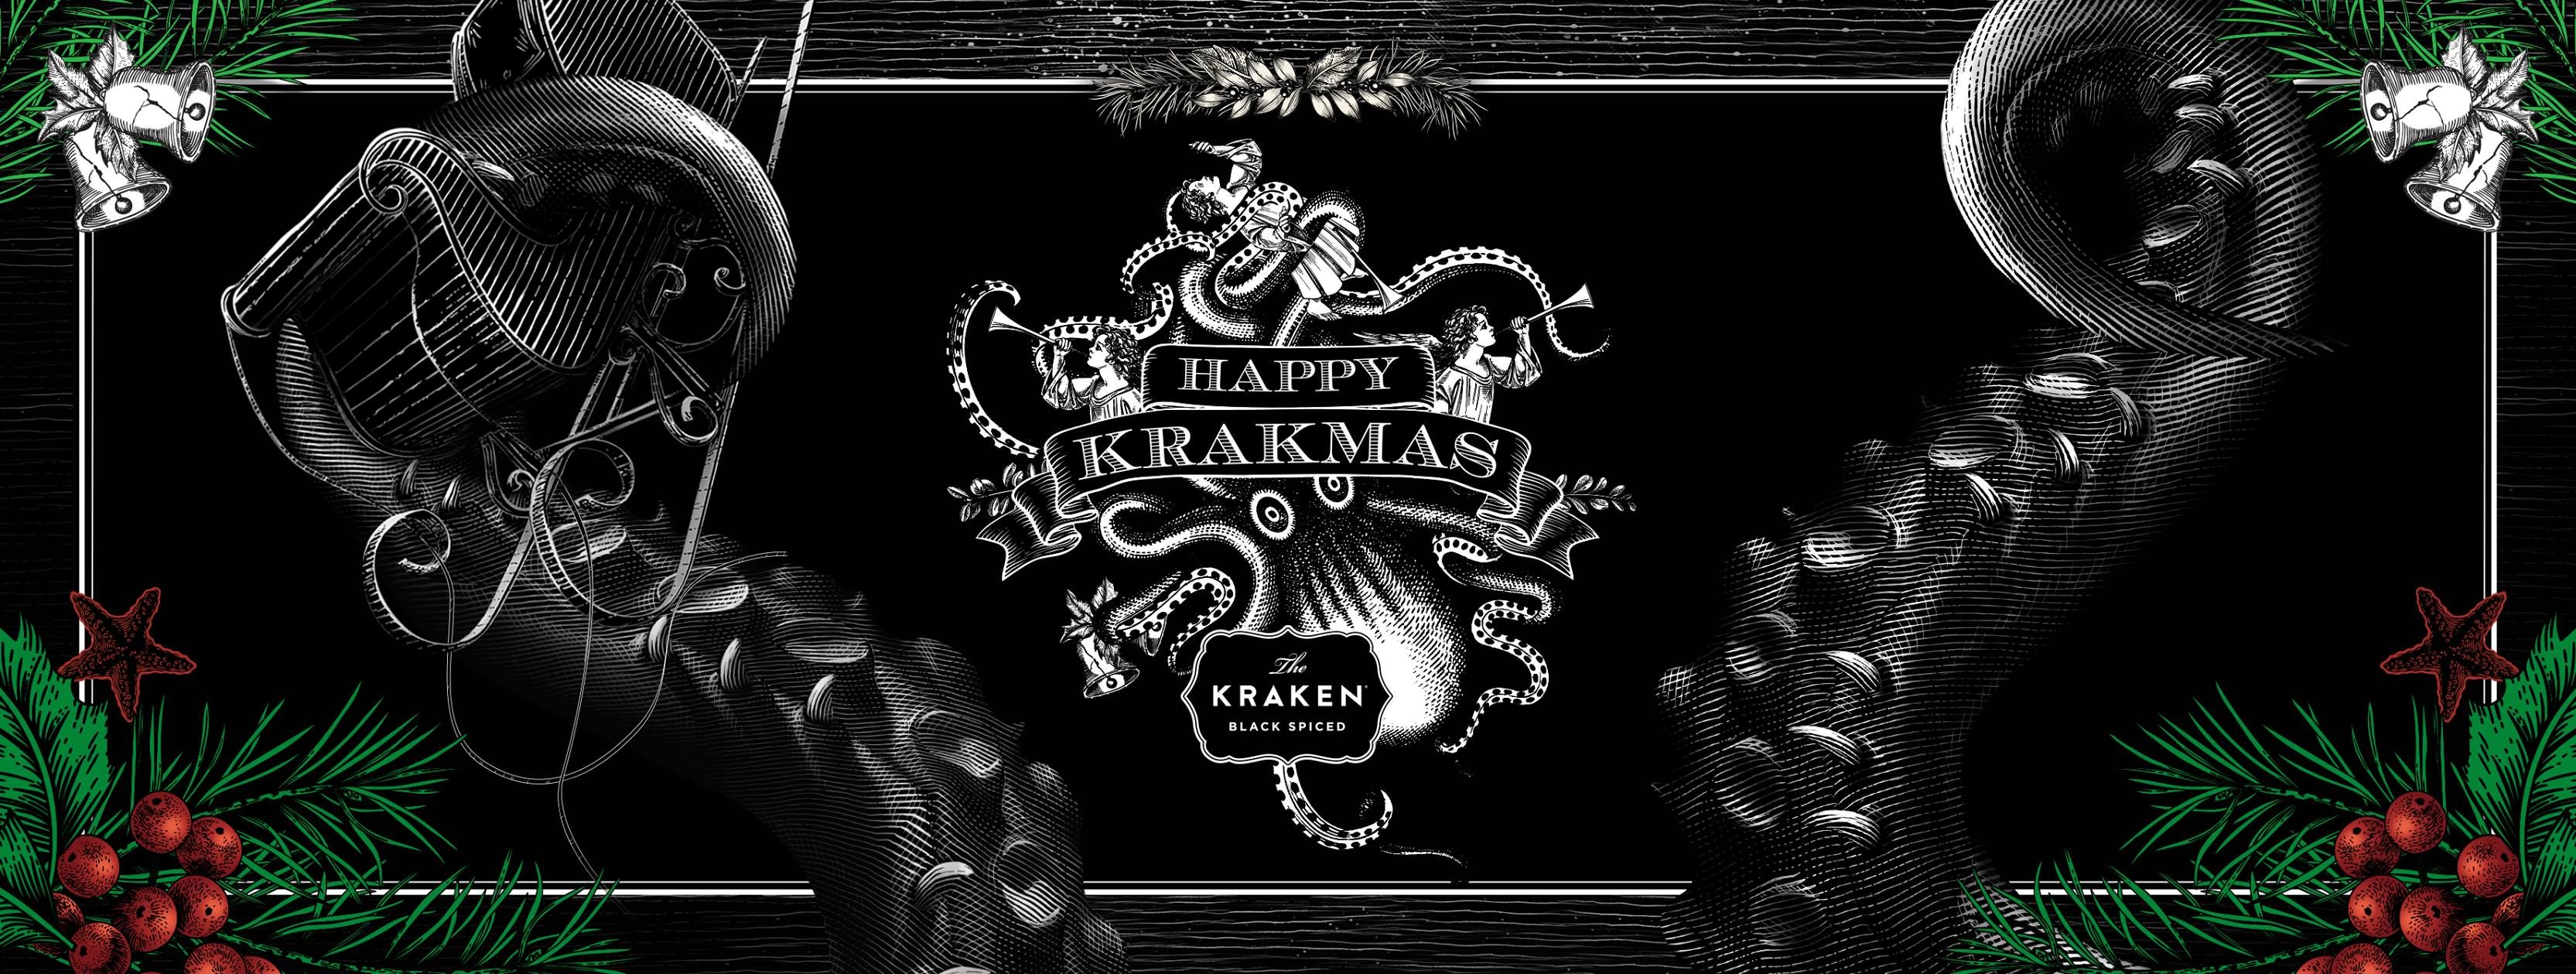 HAPPY KRAKMAS